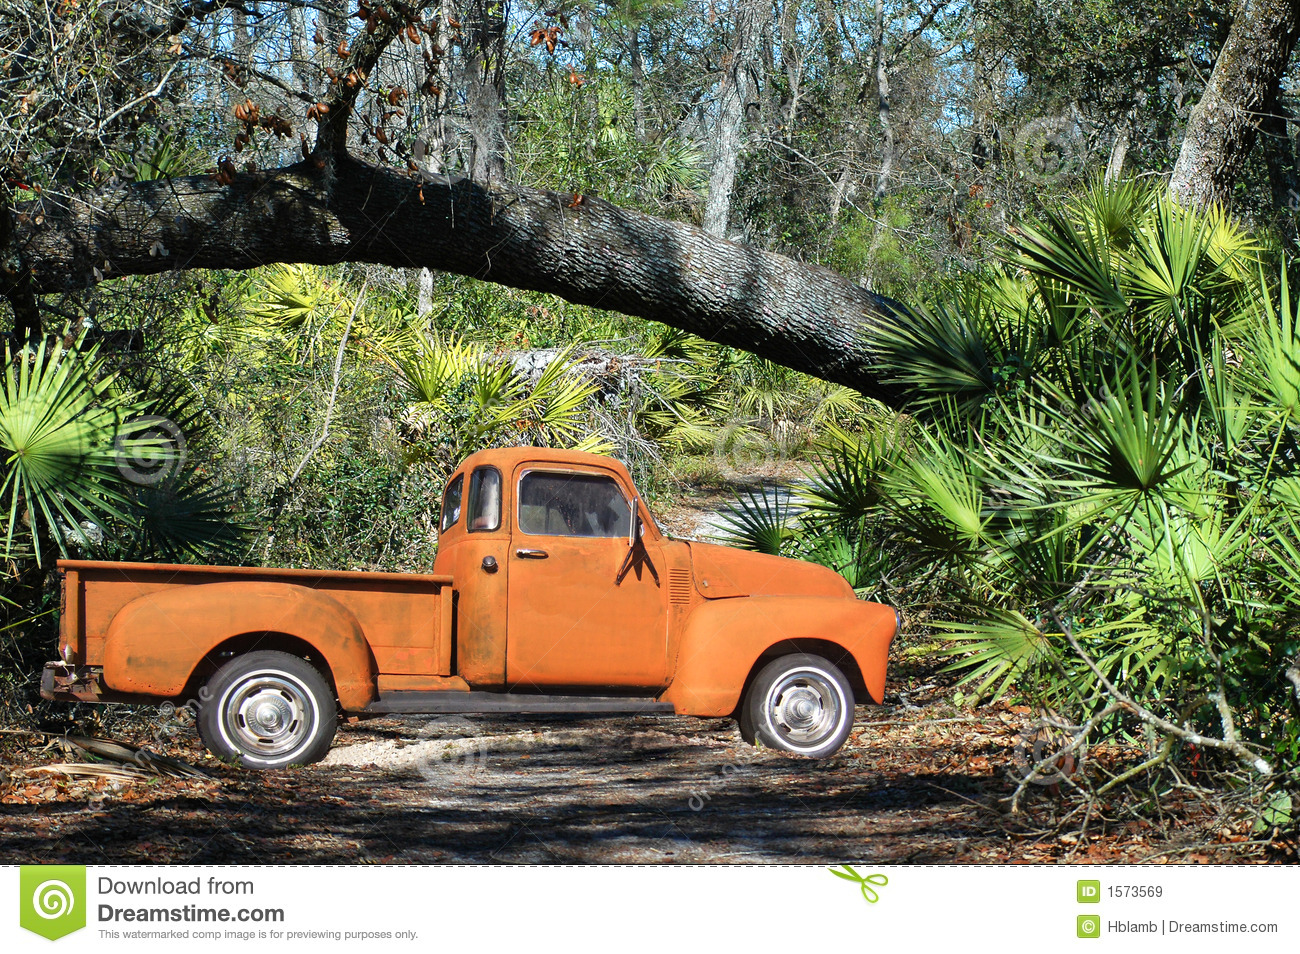 54 Chevy Pickup Off Road Royalty Free Stock Images - Image ...